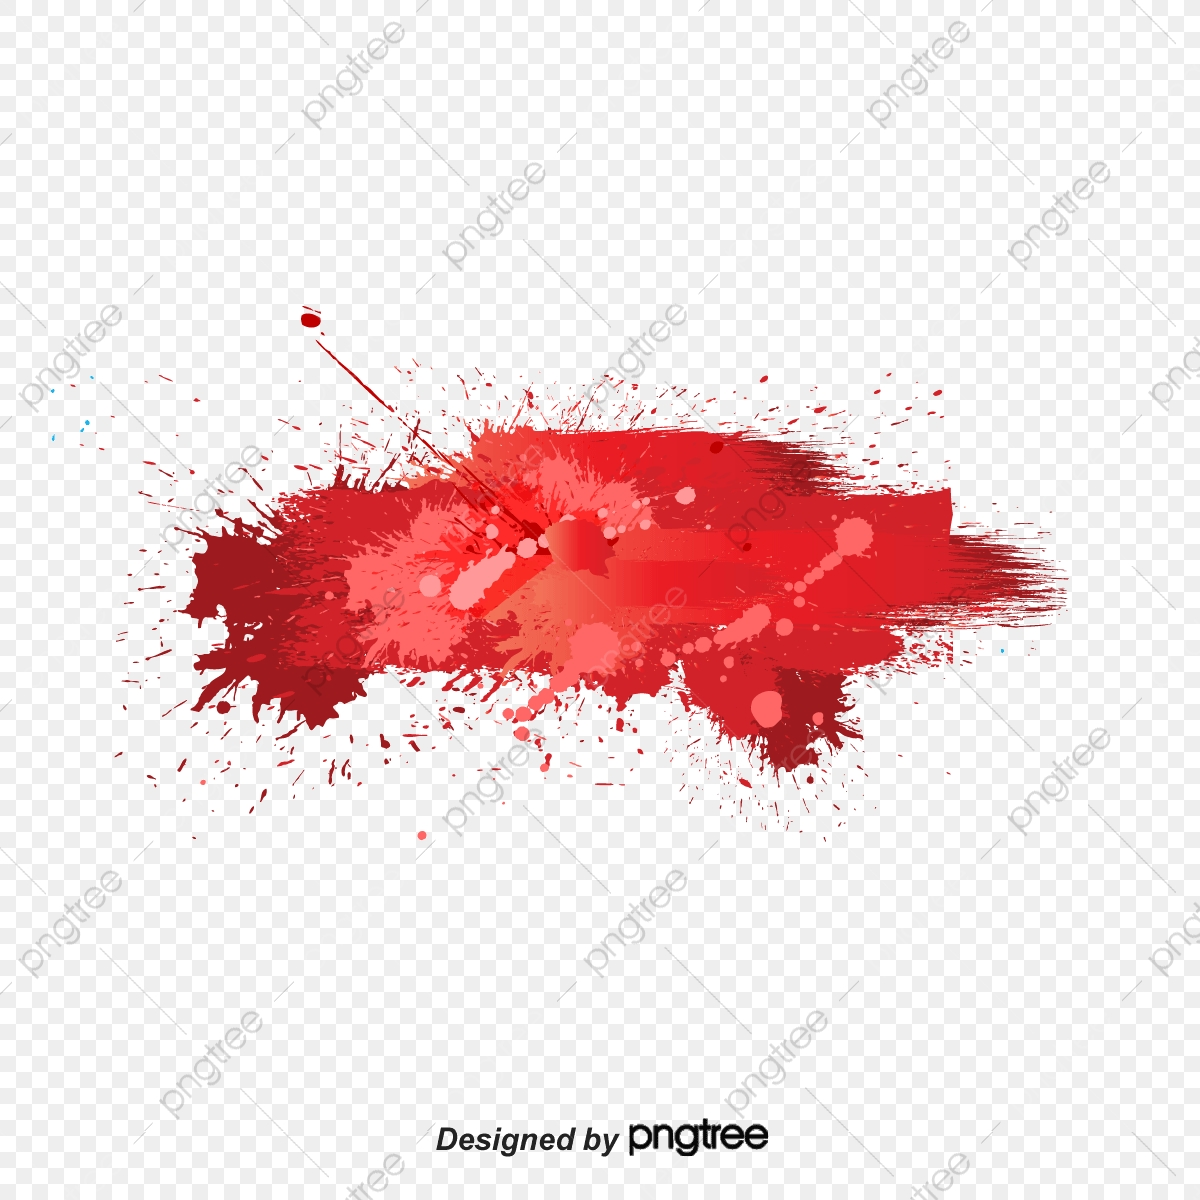 Splash Ink Red Color Ink Jet Png And Vector With Transparent Background For Free Download